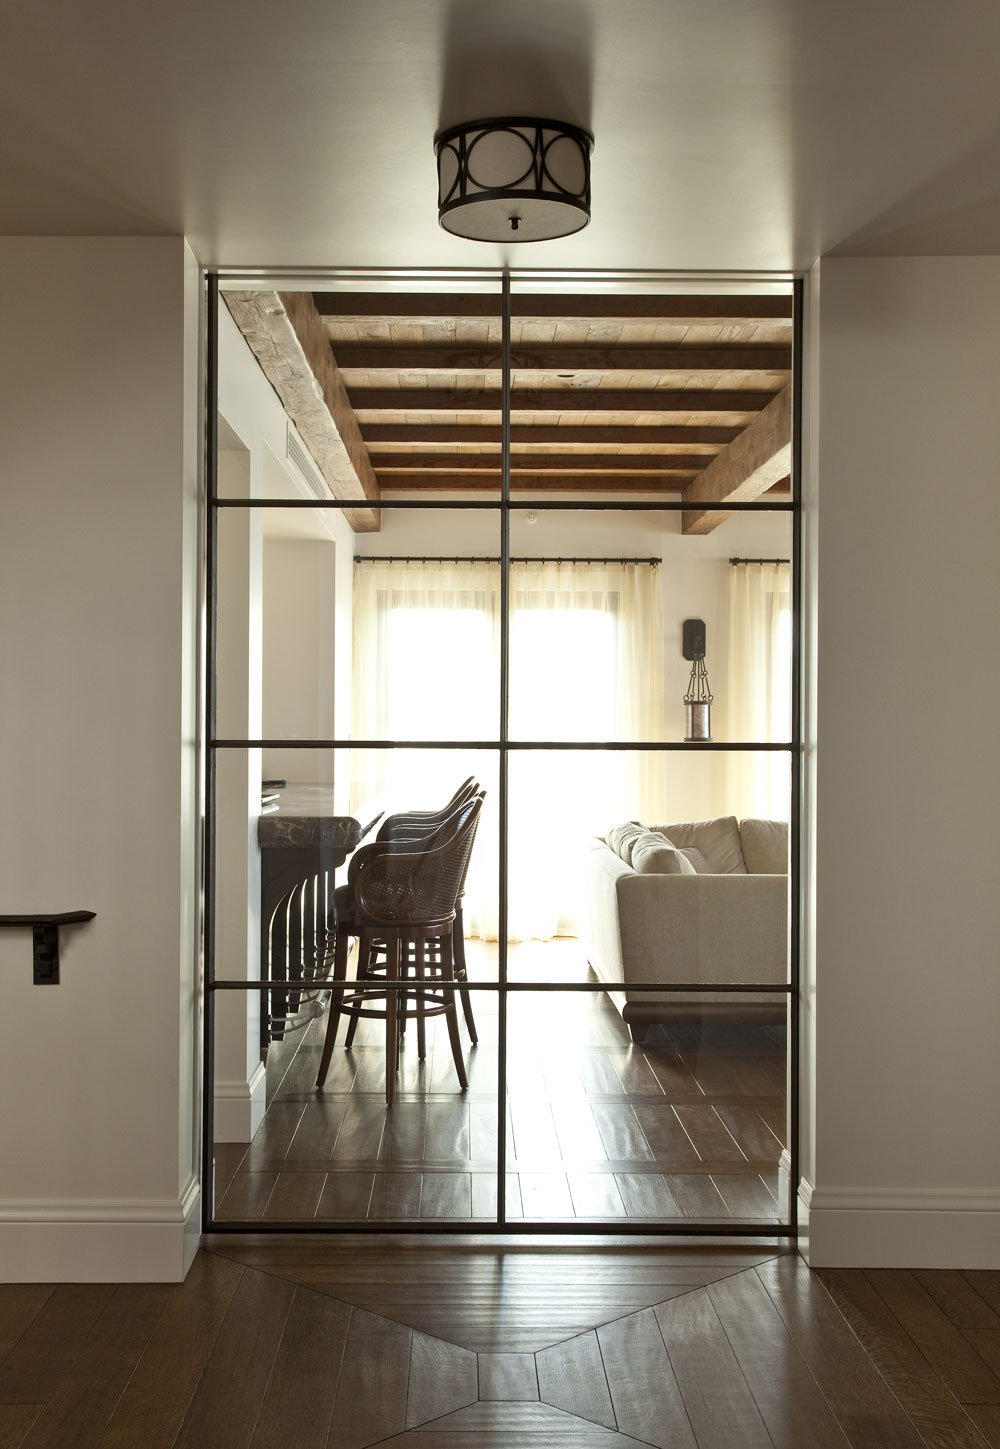 Contemporary-Spanish-Glass-Door-Wood-Floor-Detail-Corbin-Reeves.jpg